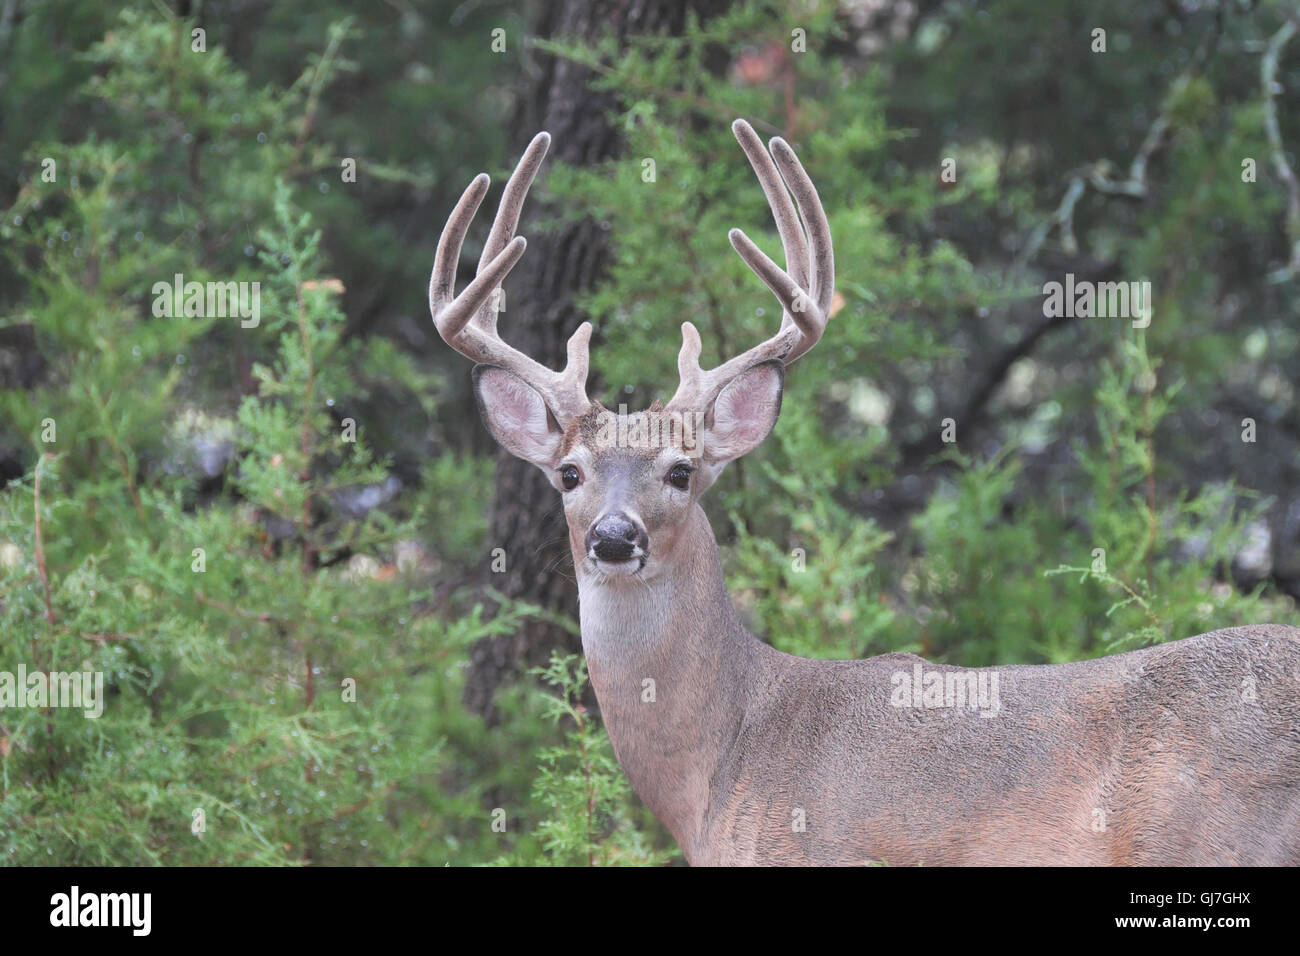 Texas Whitetail 8 Point Buck Deer With Antlers Covered In Velvet